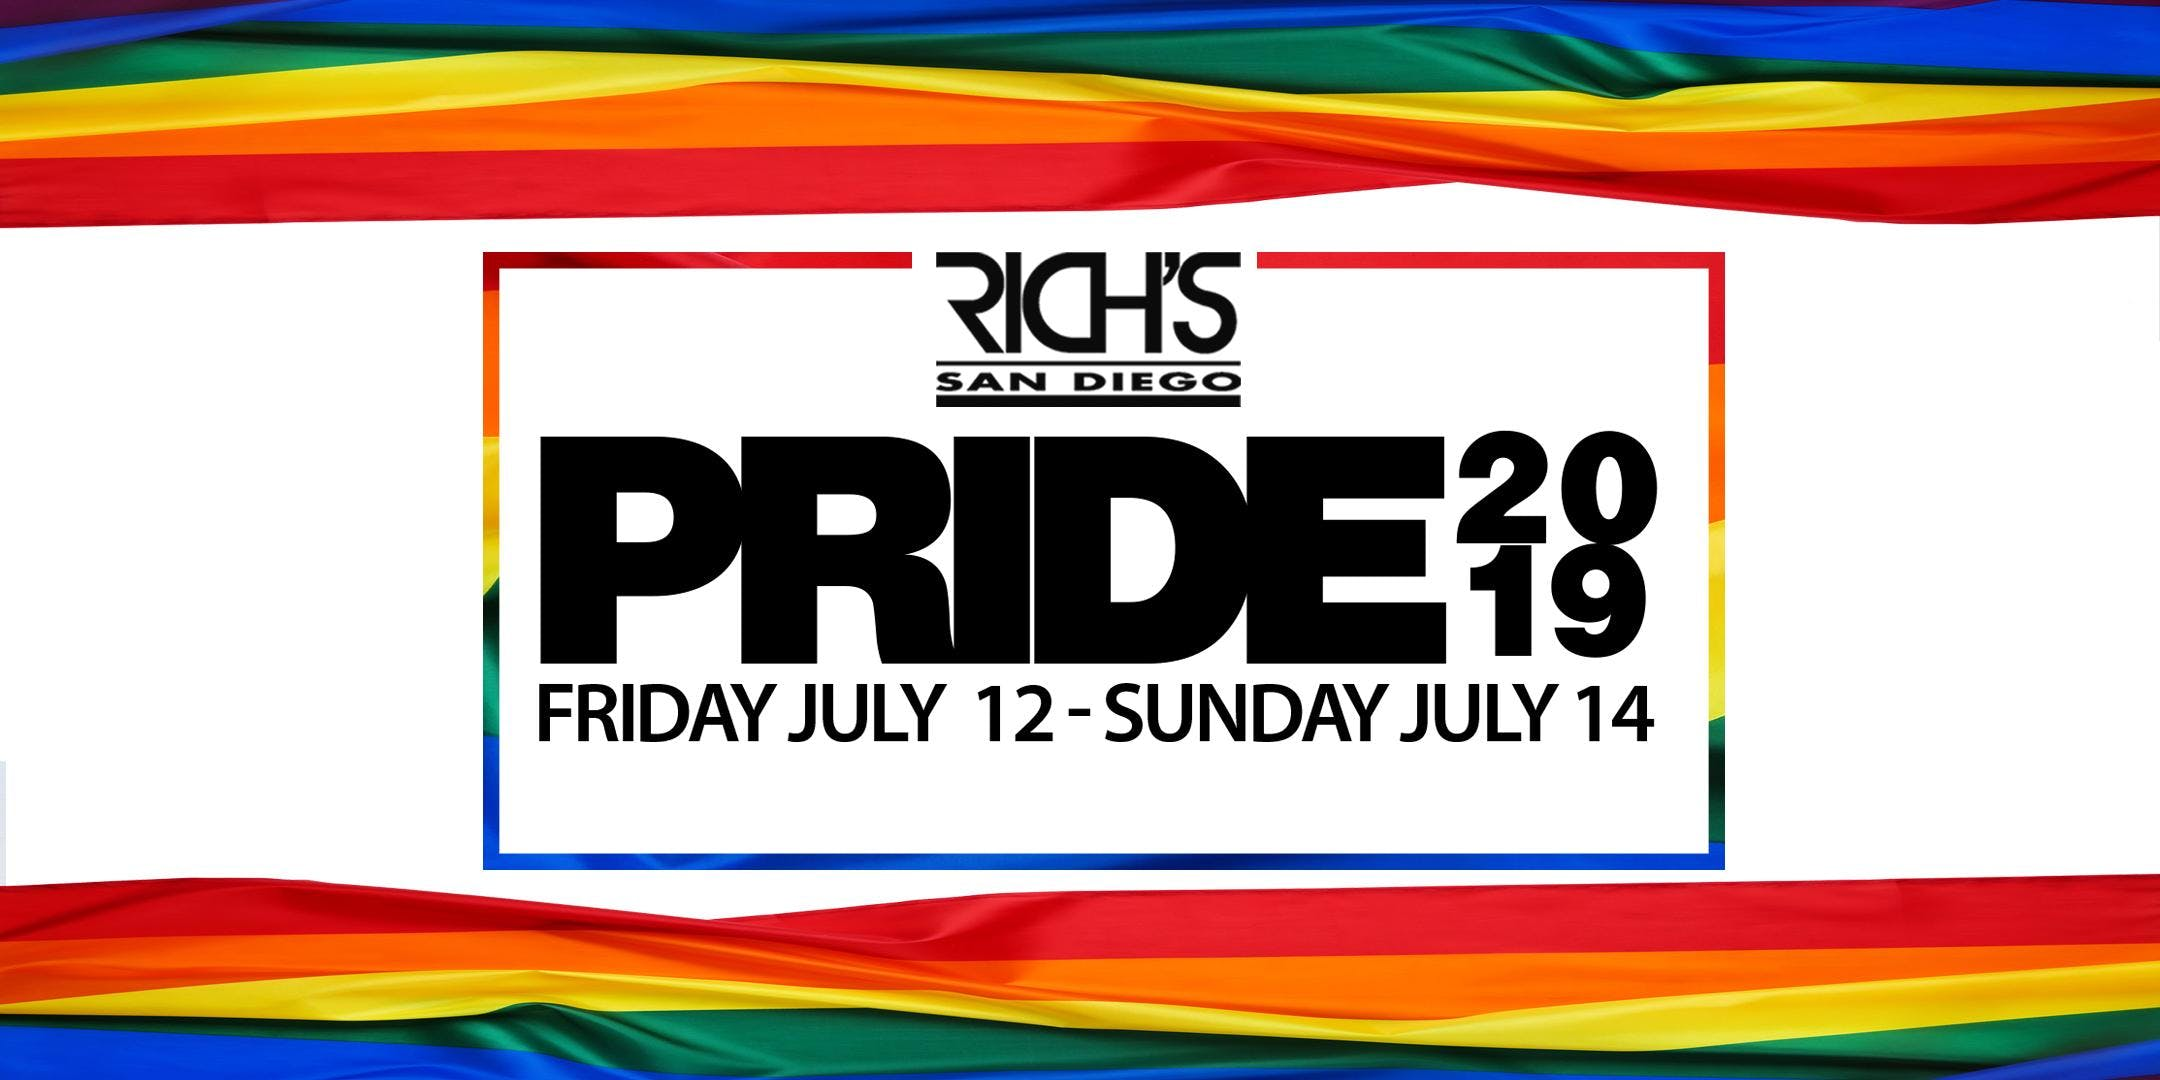 Rich's Pride 2019 VIP Weekend Pass